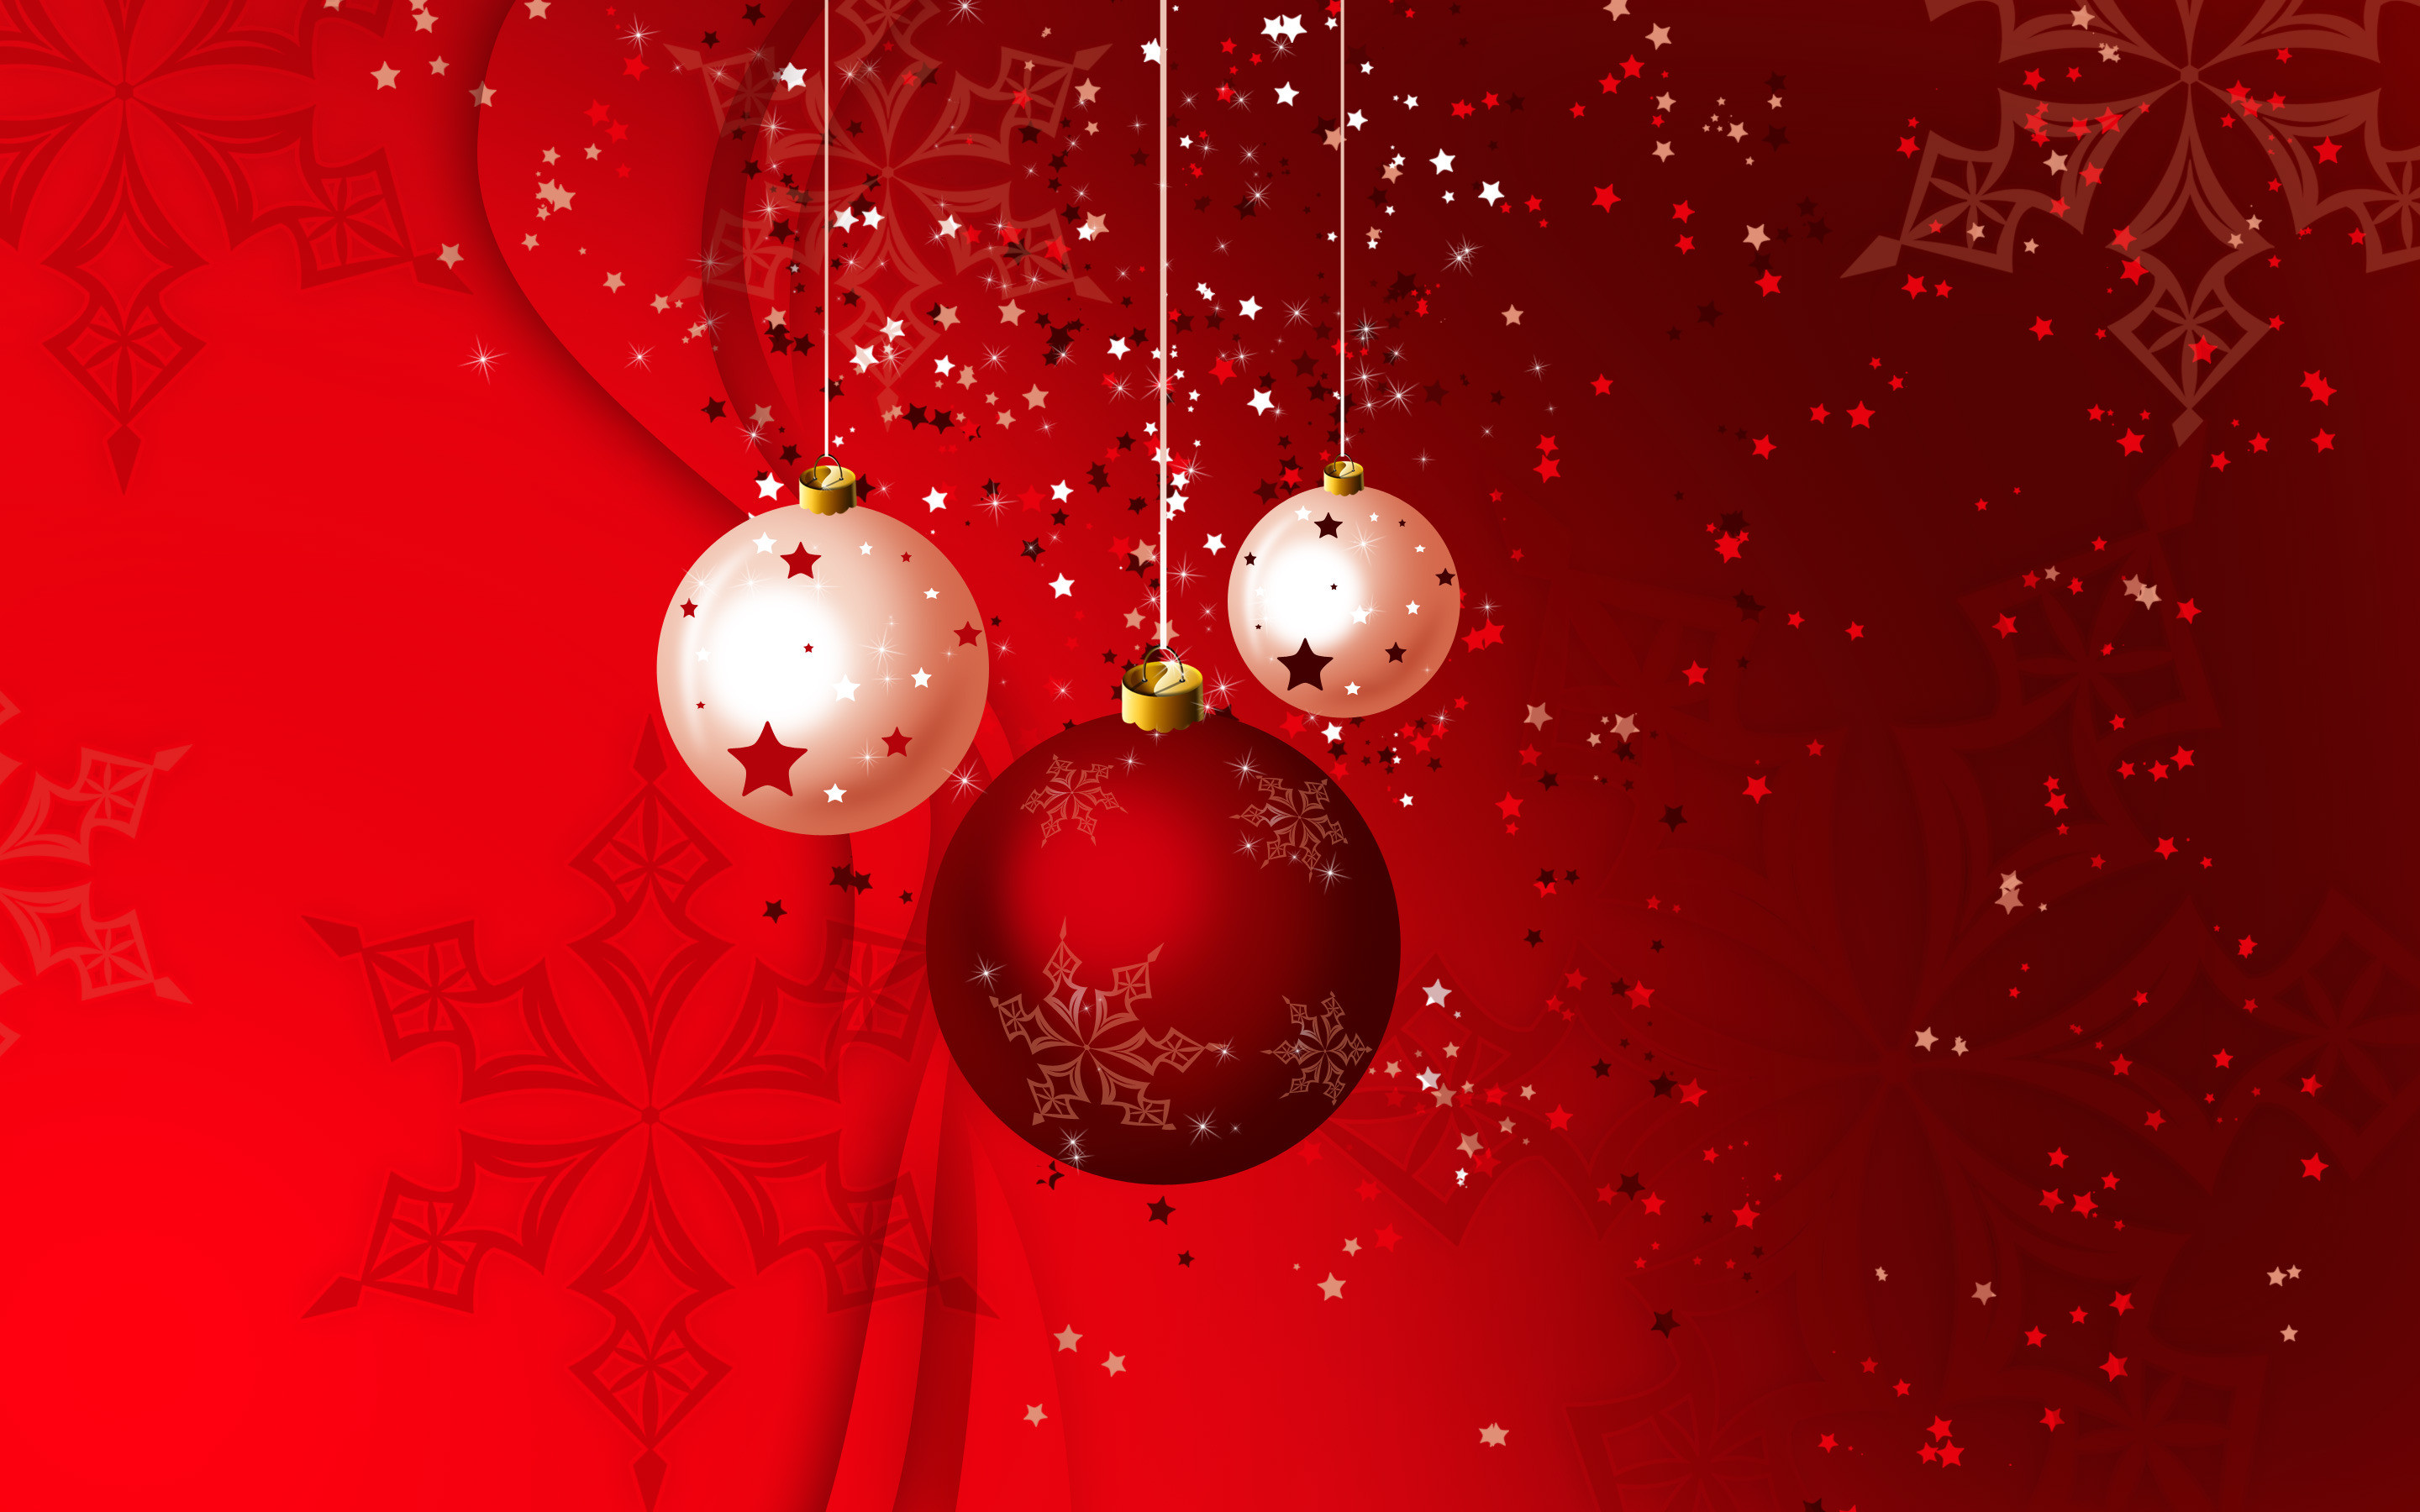 … and white Christmas globes HD Wallpaper 2880×1800